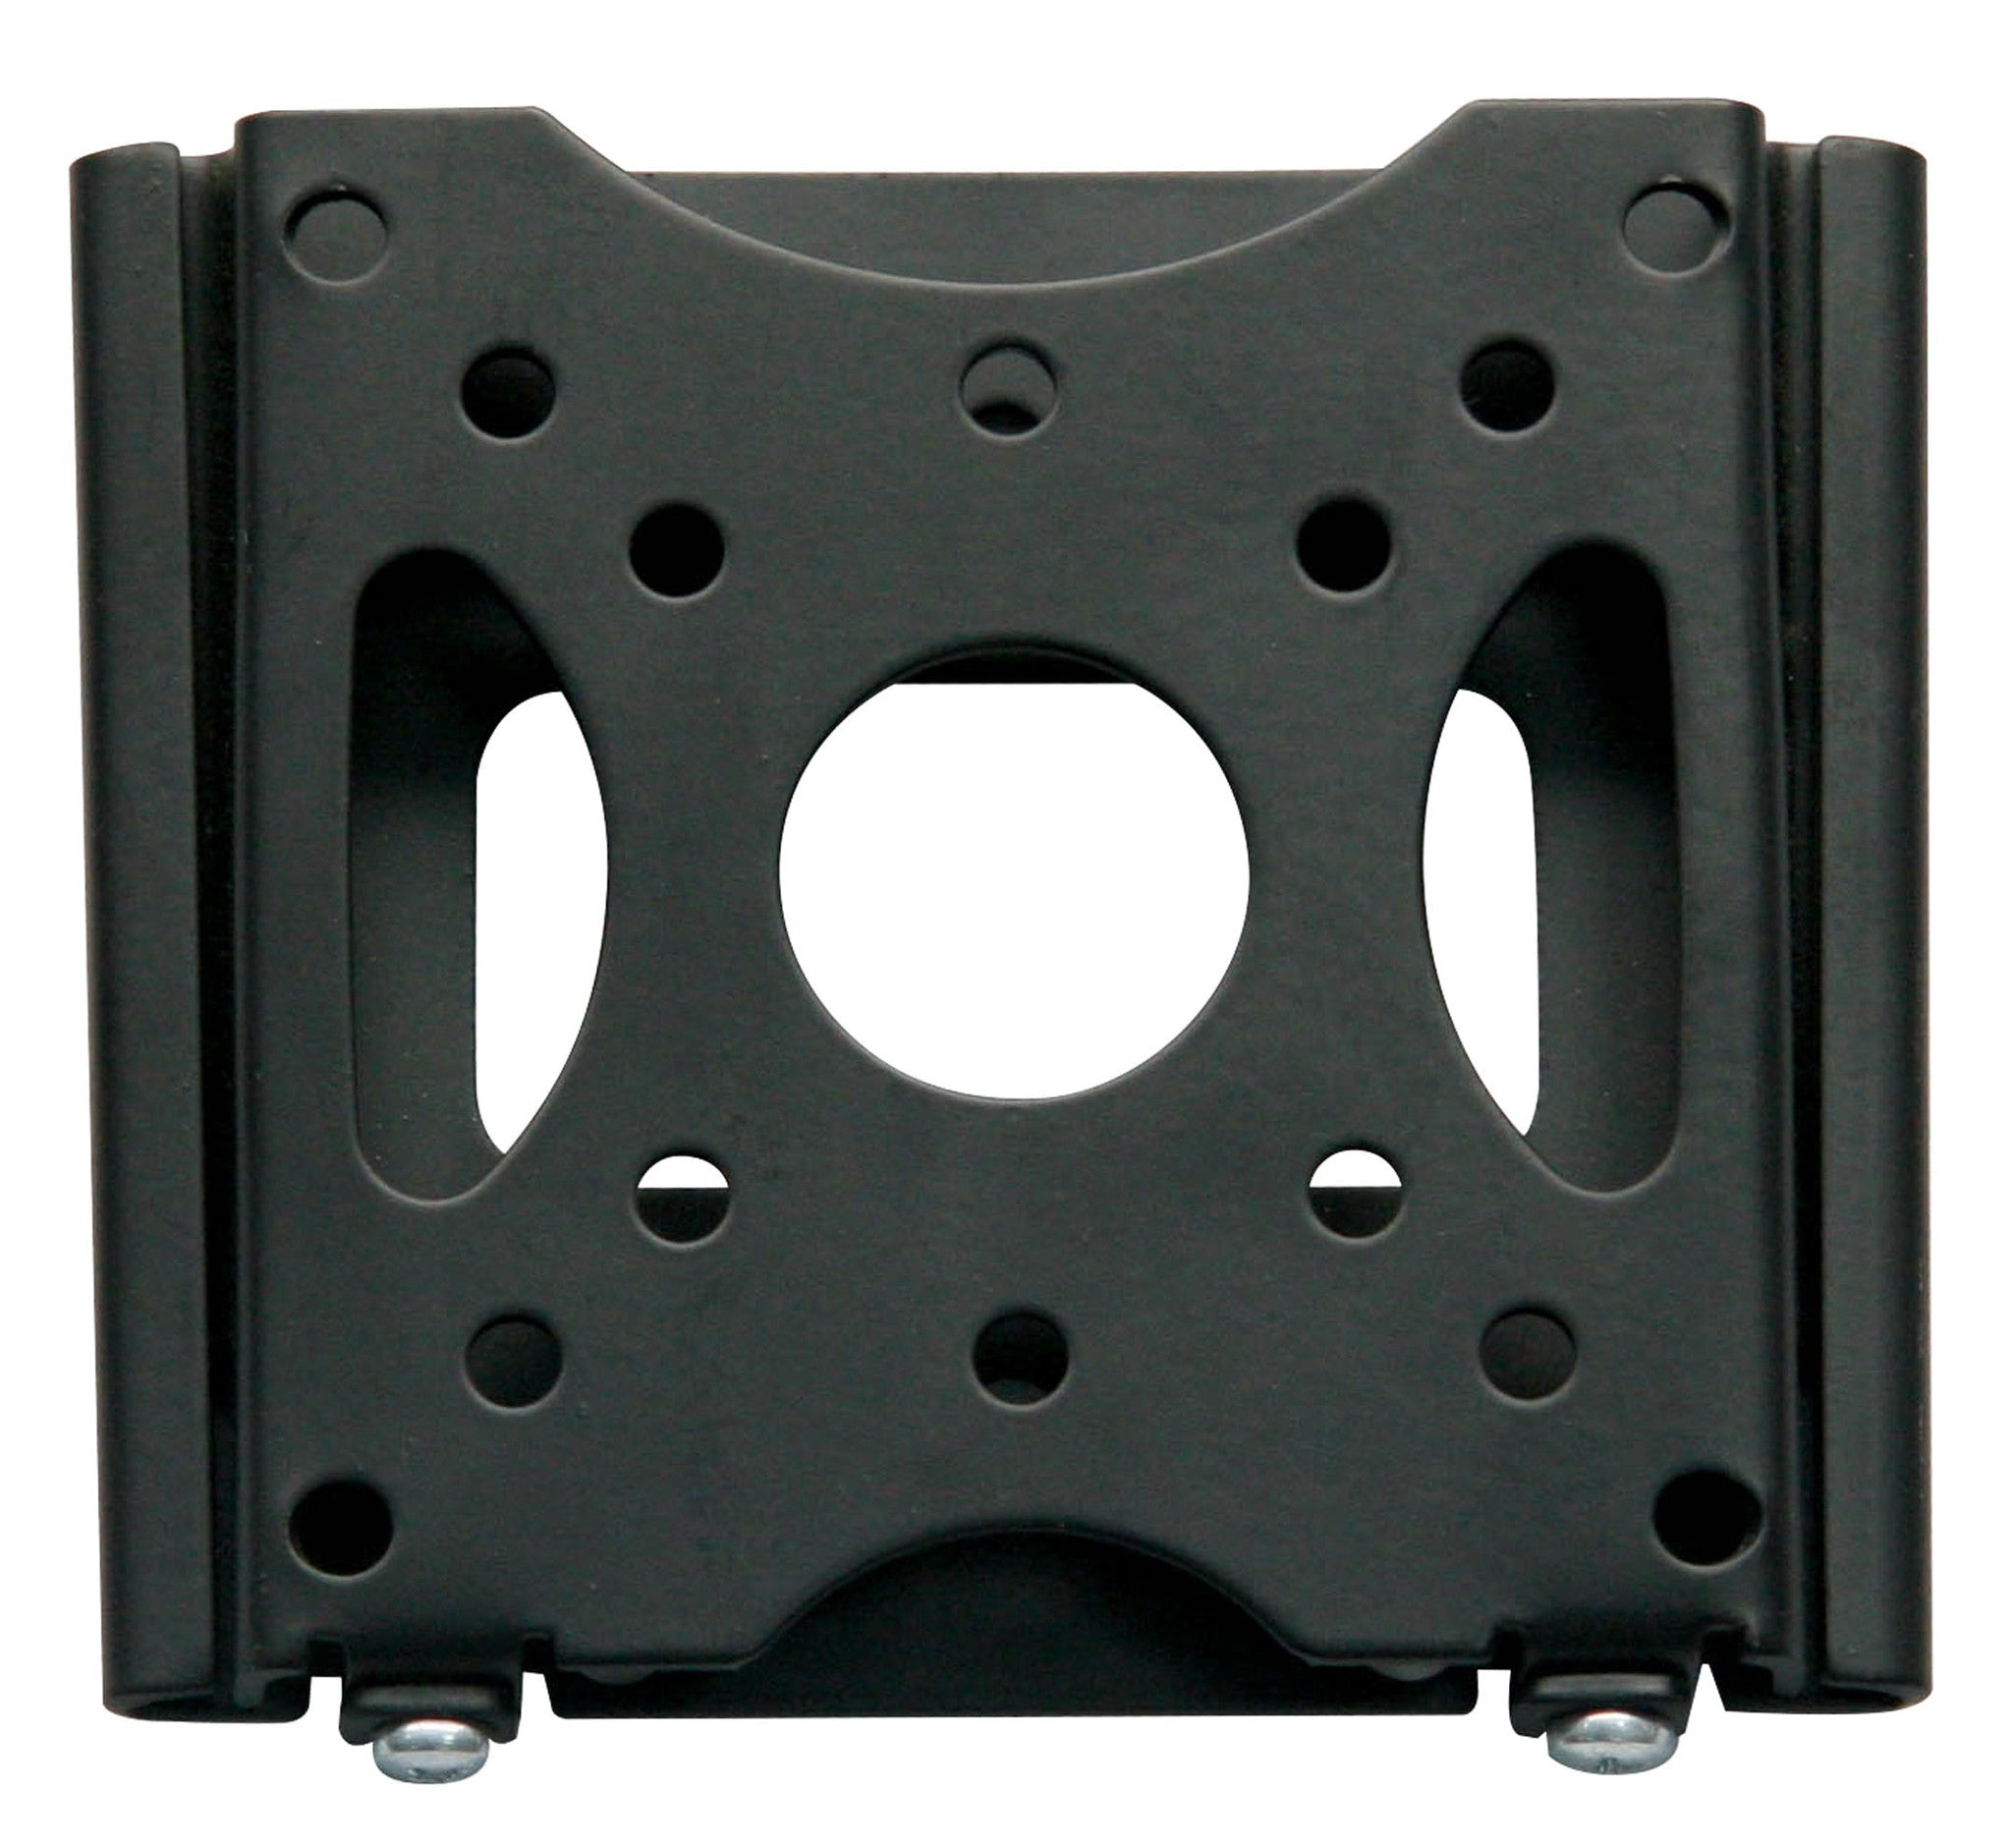 DYNALINK LCD Monitor Slimline Fixed Wall Bracket - BNR Industrial